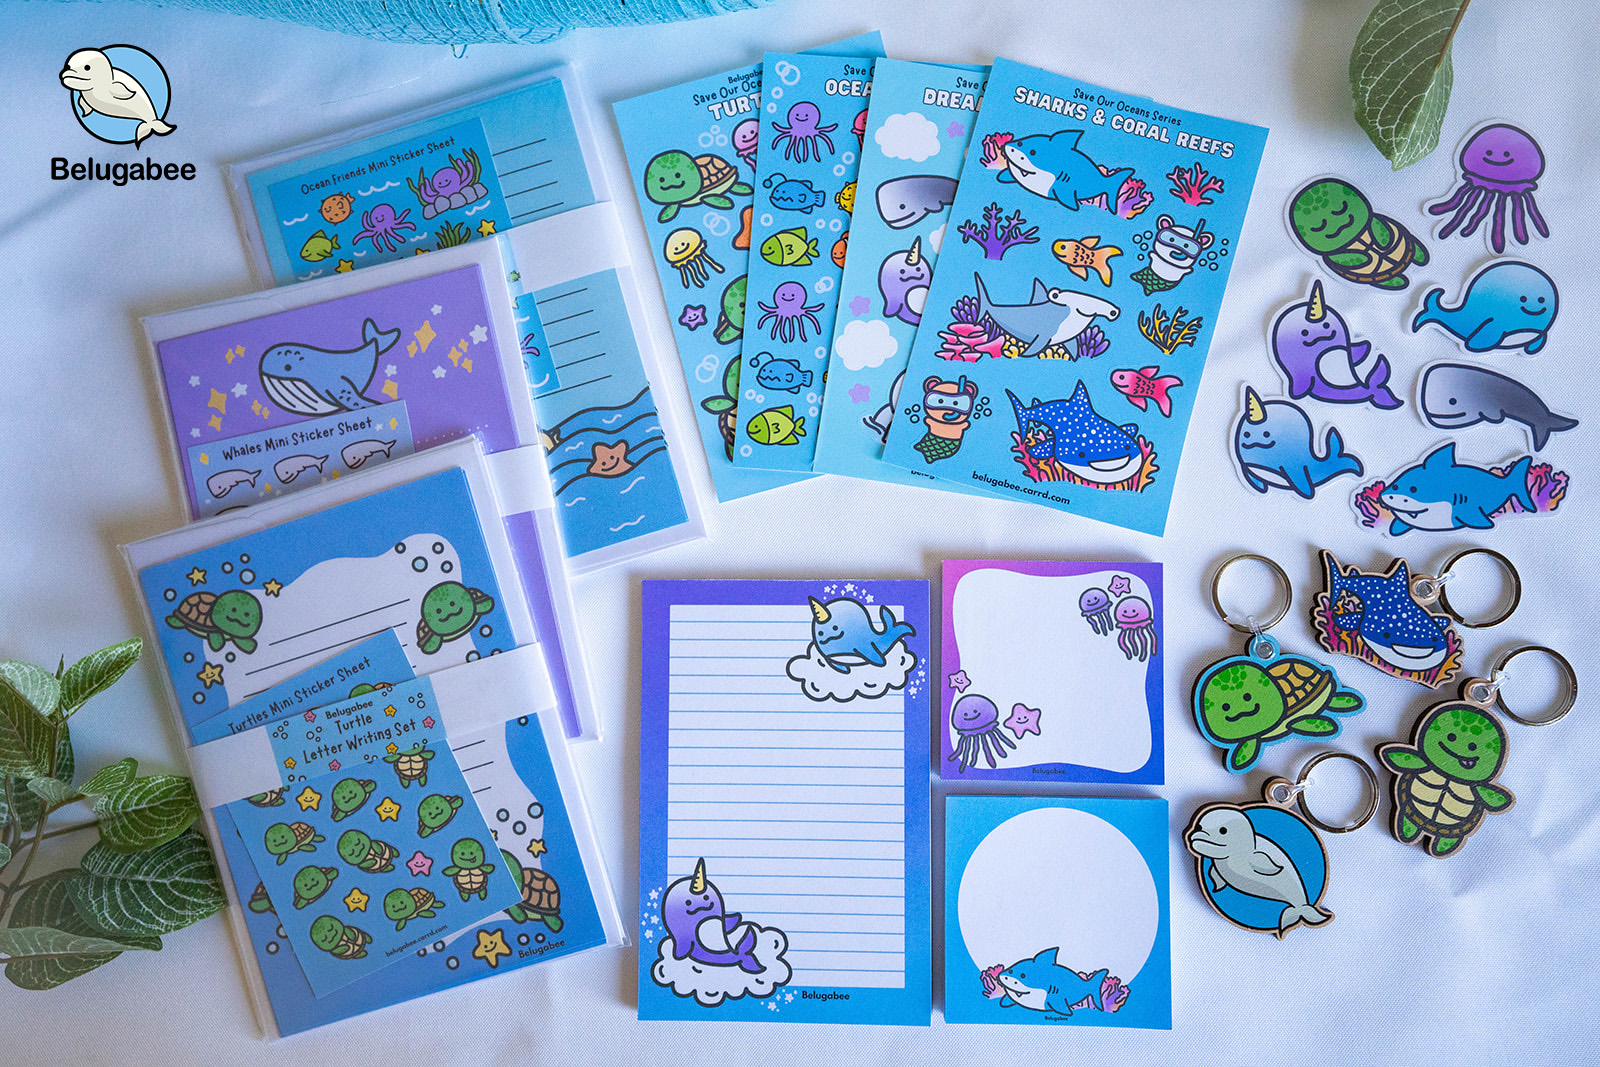 This is an image of some of Belugabee products. Some blue and purple stickers, notepads and sticky notes.